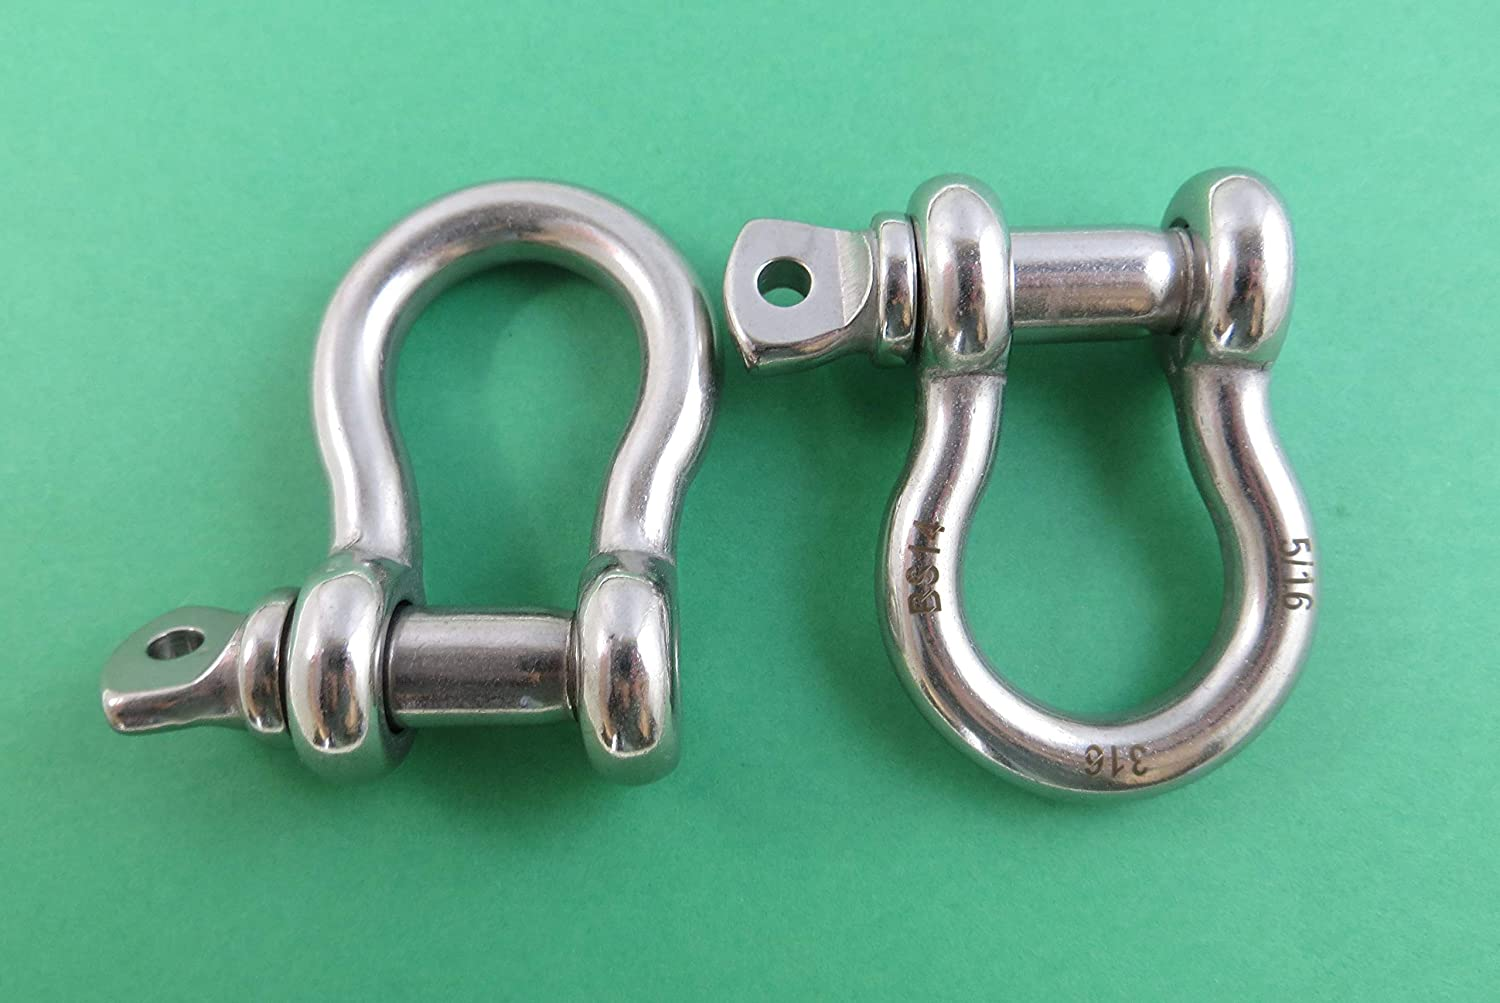 6mm by 4 Foot with 2 Stainless Steel Shackles Boat US Stainless 4 Foot Stainless Steel 316 Anchor Chain 1//4